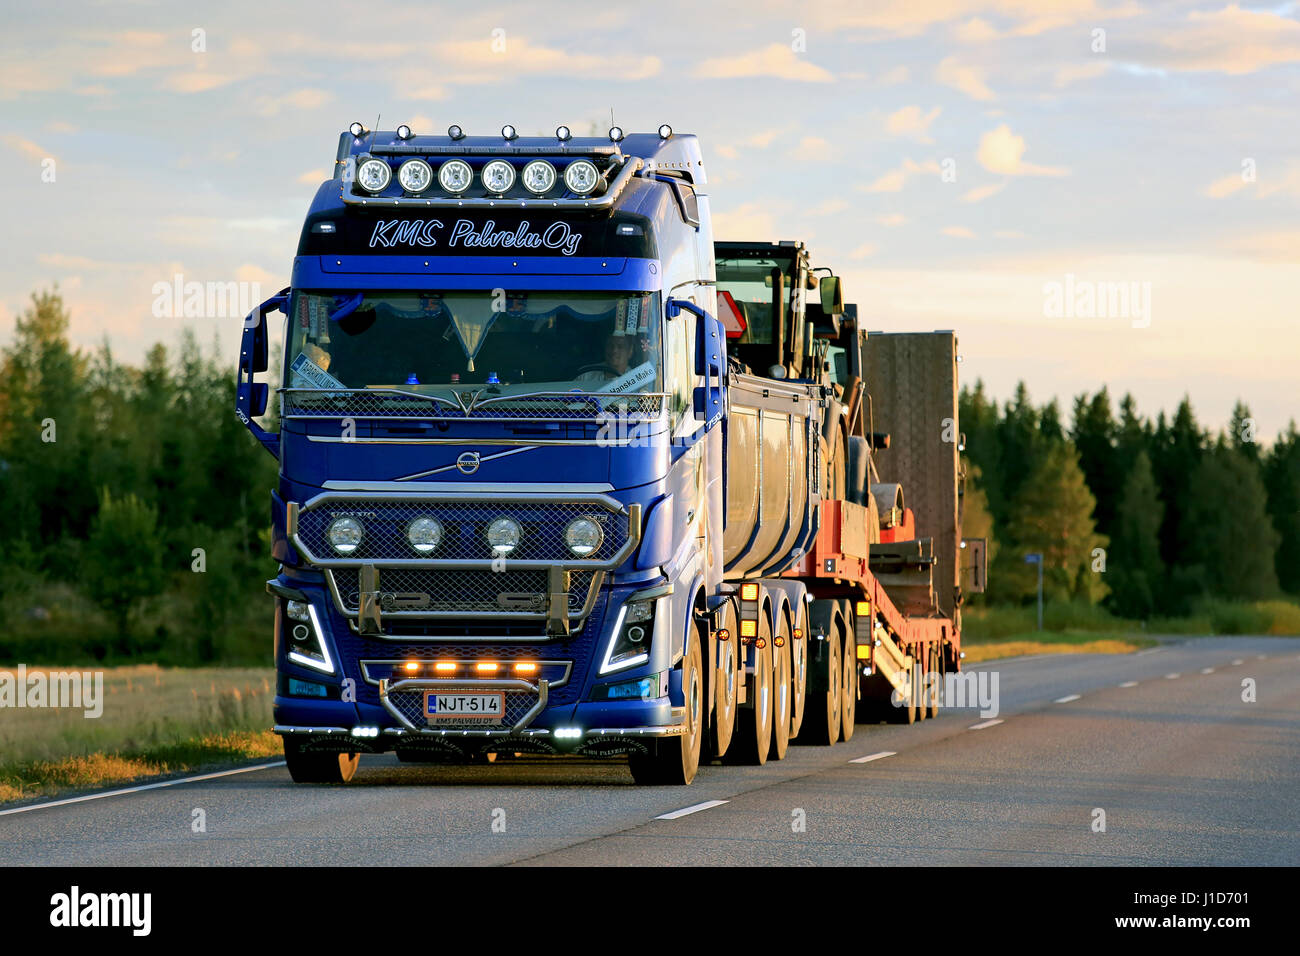 Road Show Lorry Stockfotos & Road Show Lorry Bilder - Alamy